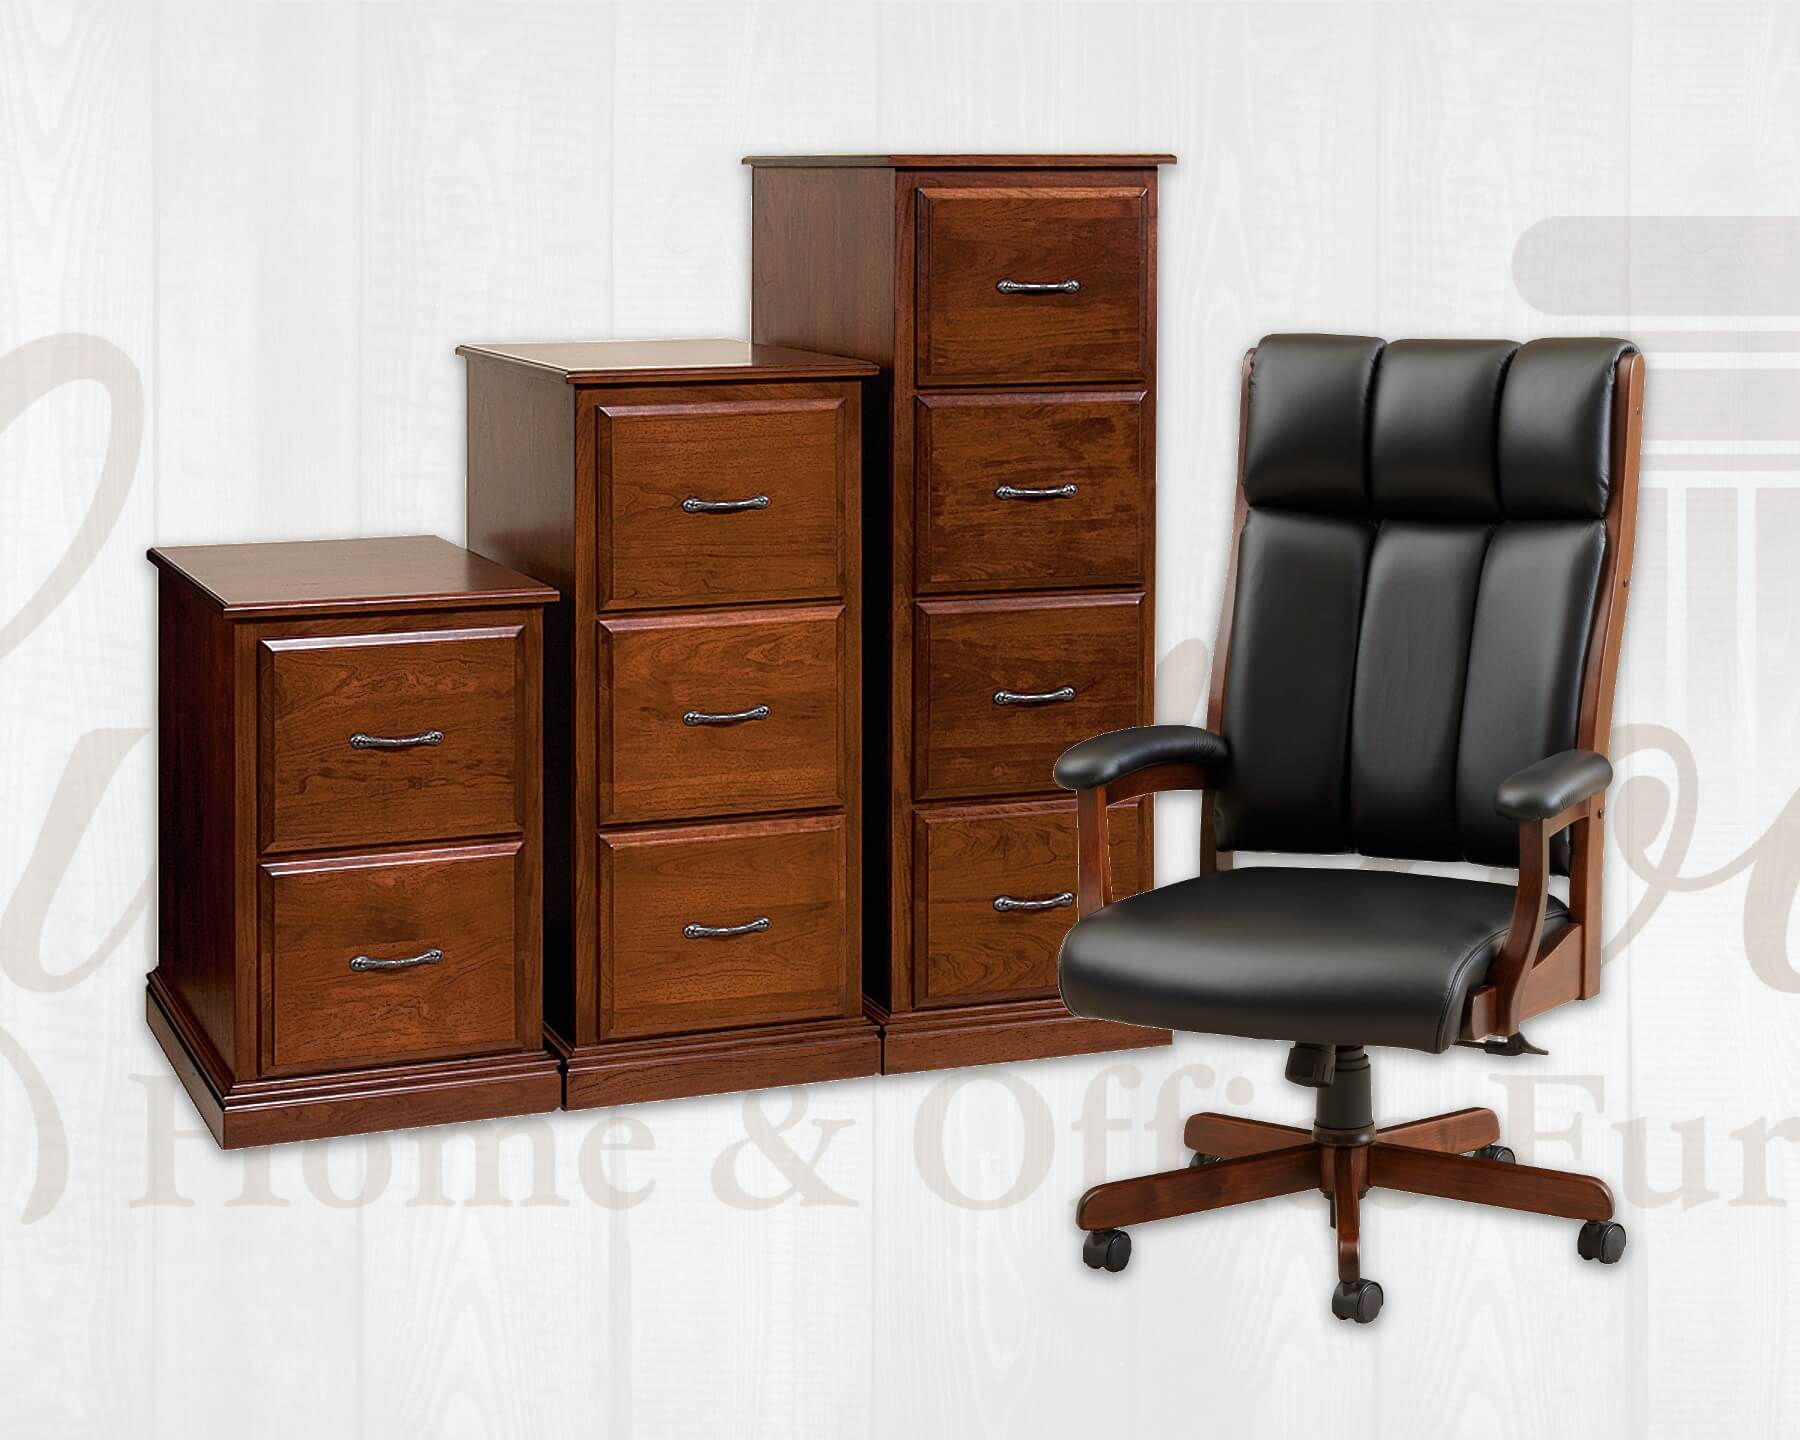 Office Chairs & File Storage